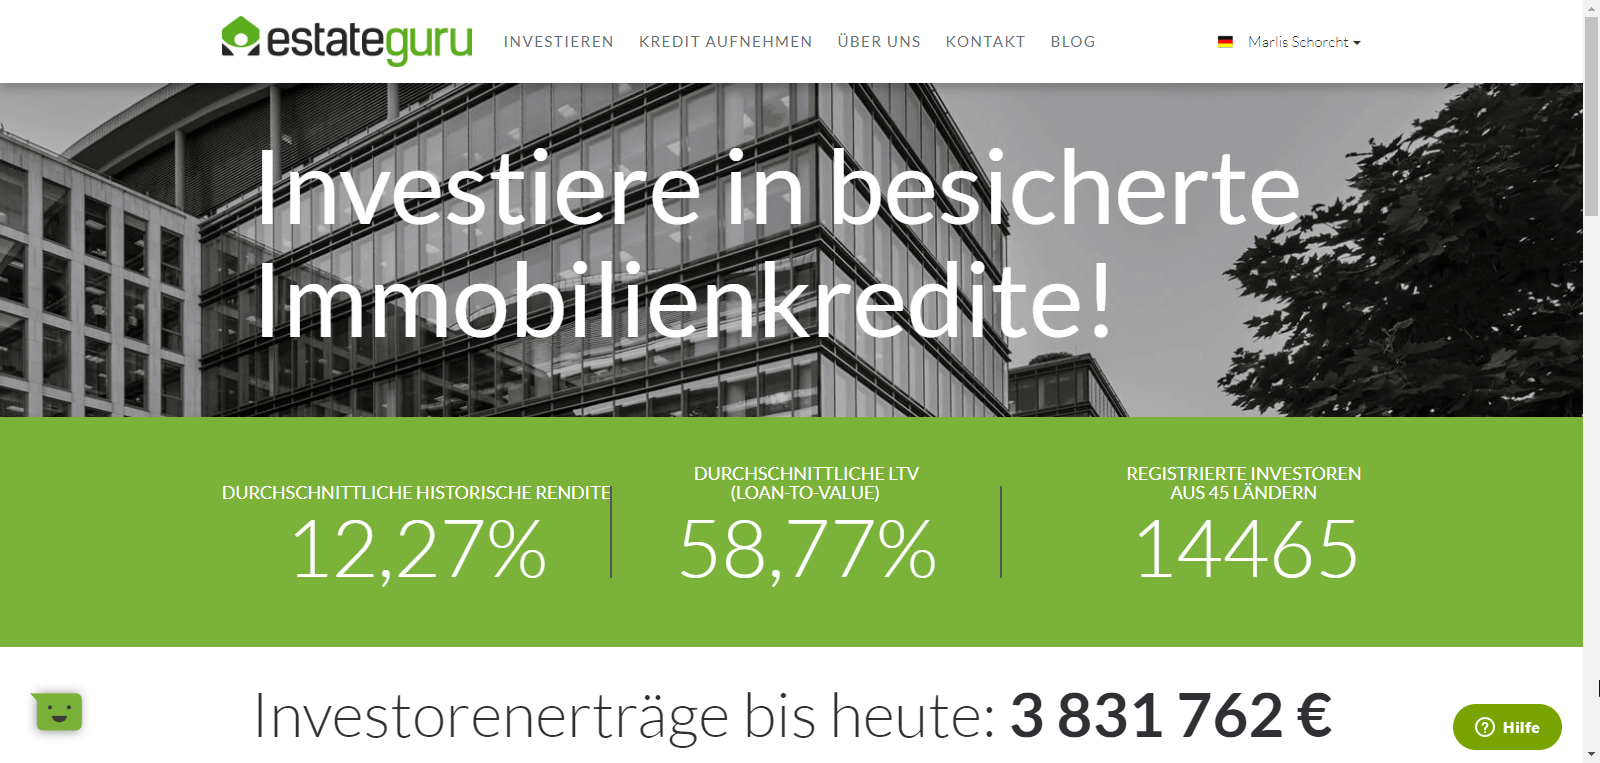 estateguru Immobilienkredite P2P